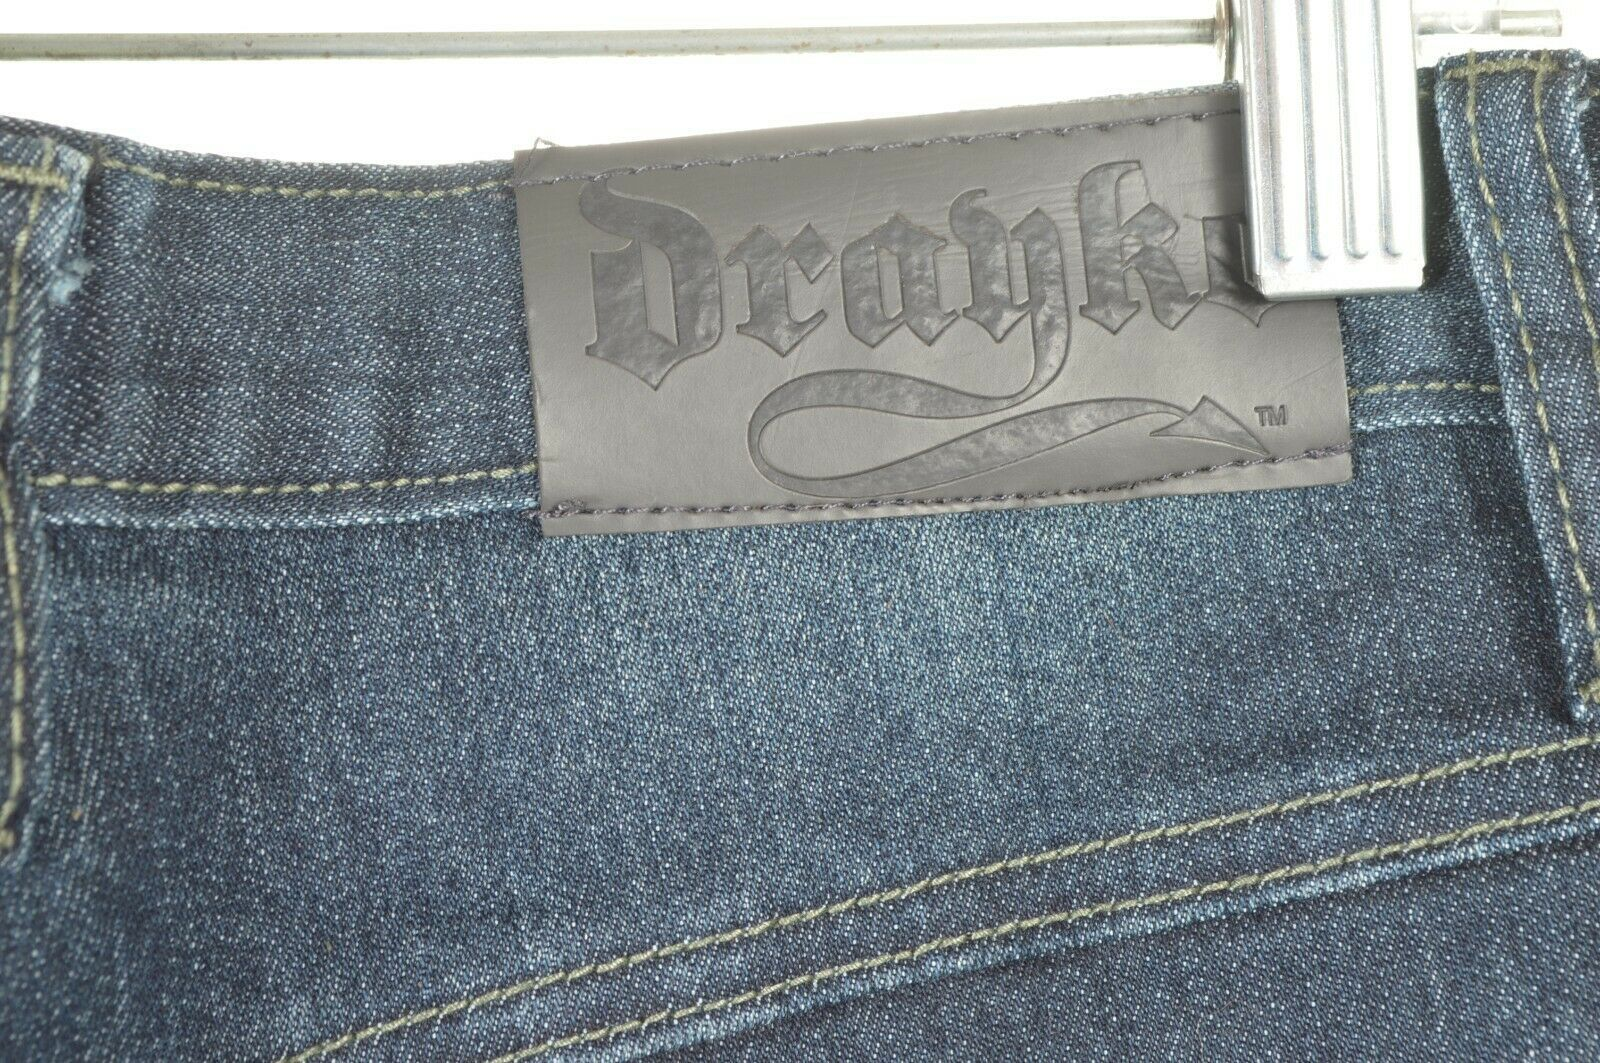 Drayko Jeans Mens 30 x 37 Motorcycle Riding extra long padded - Slightly Used image 10